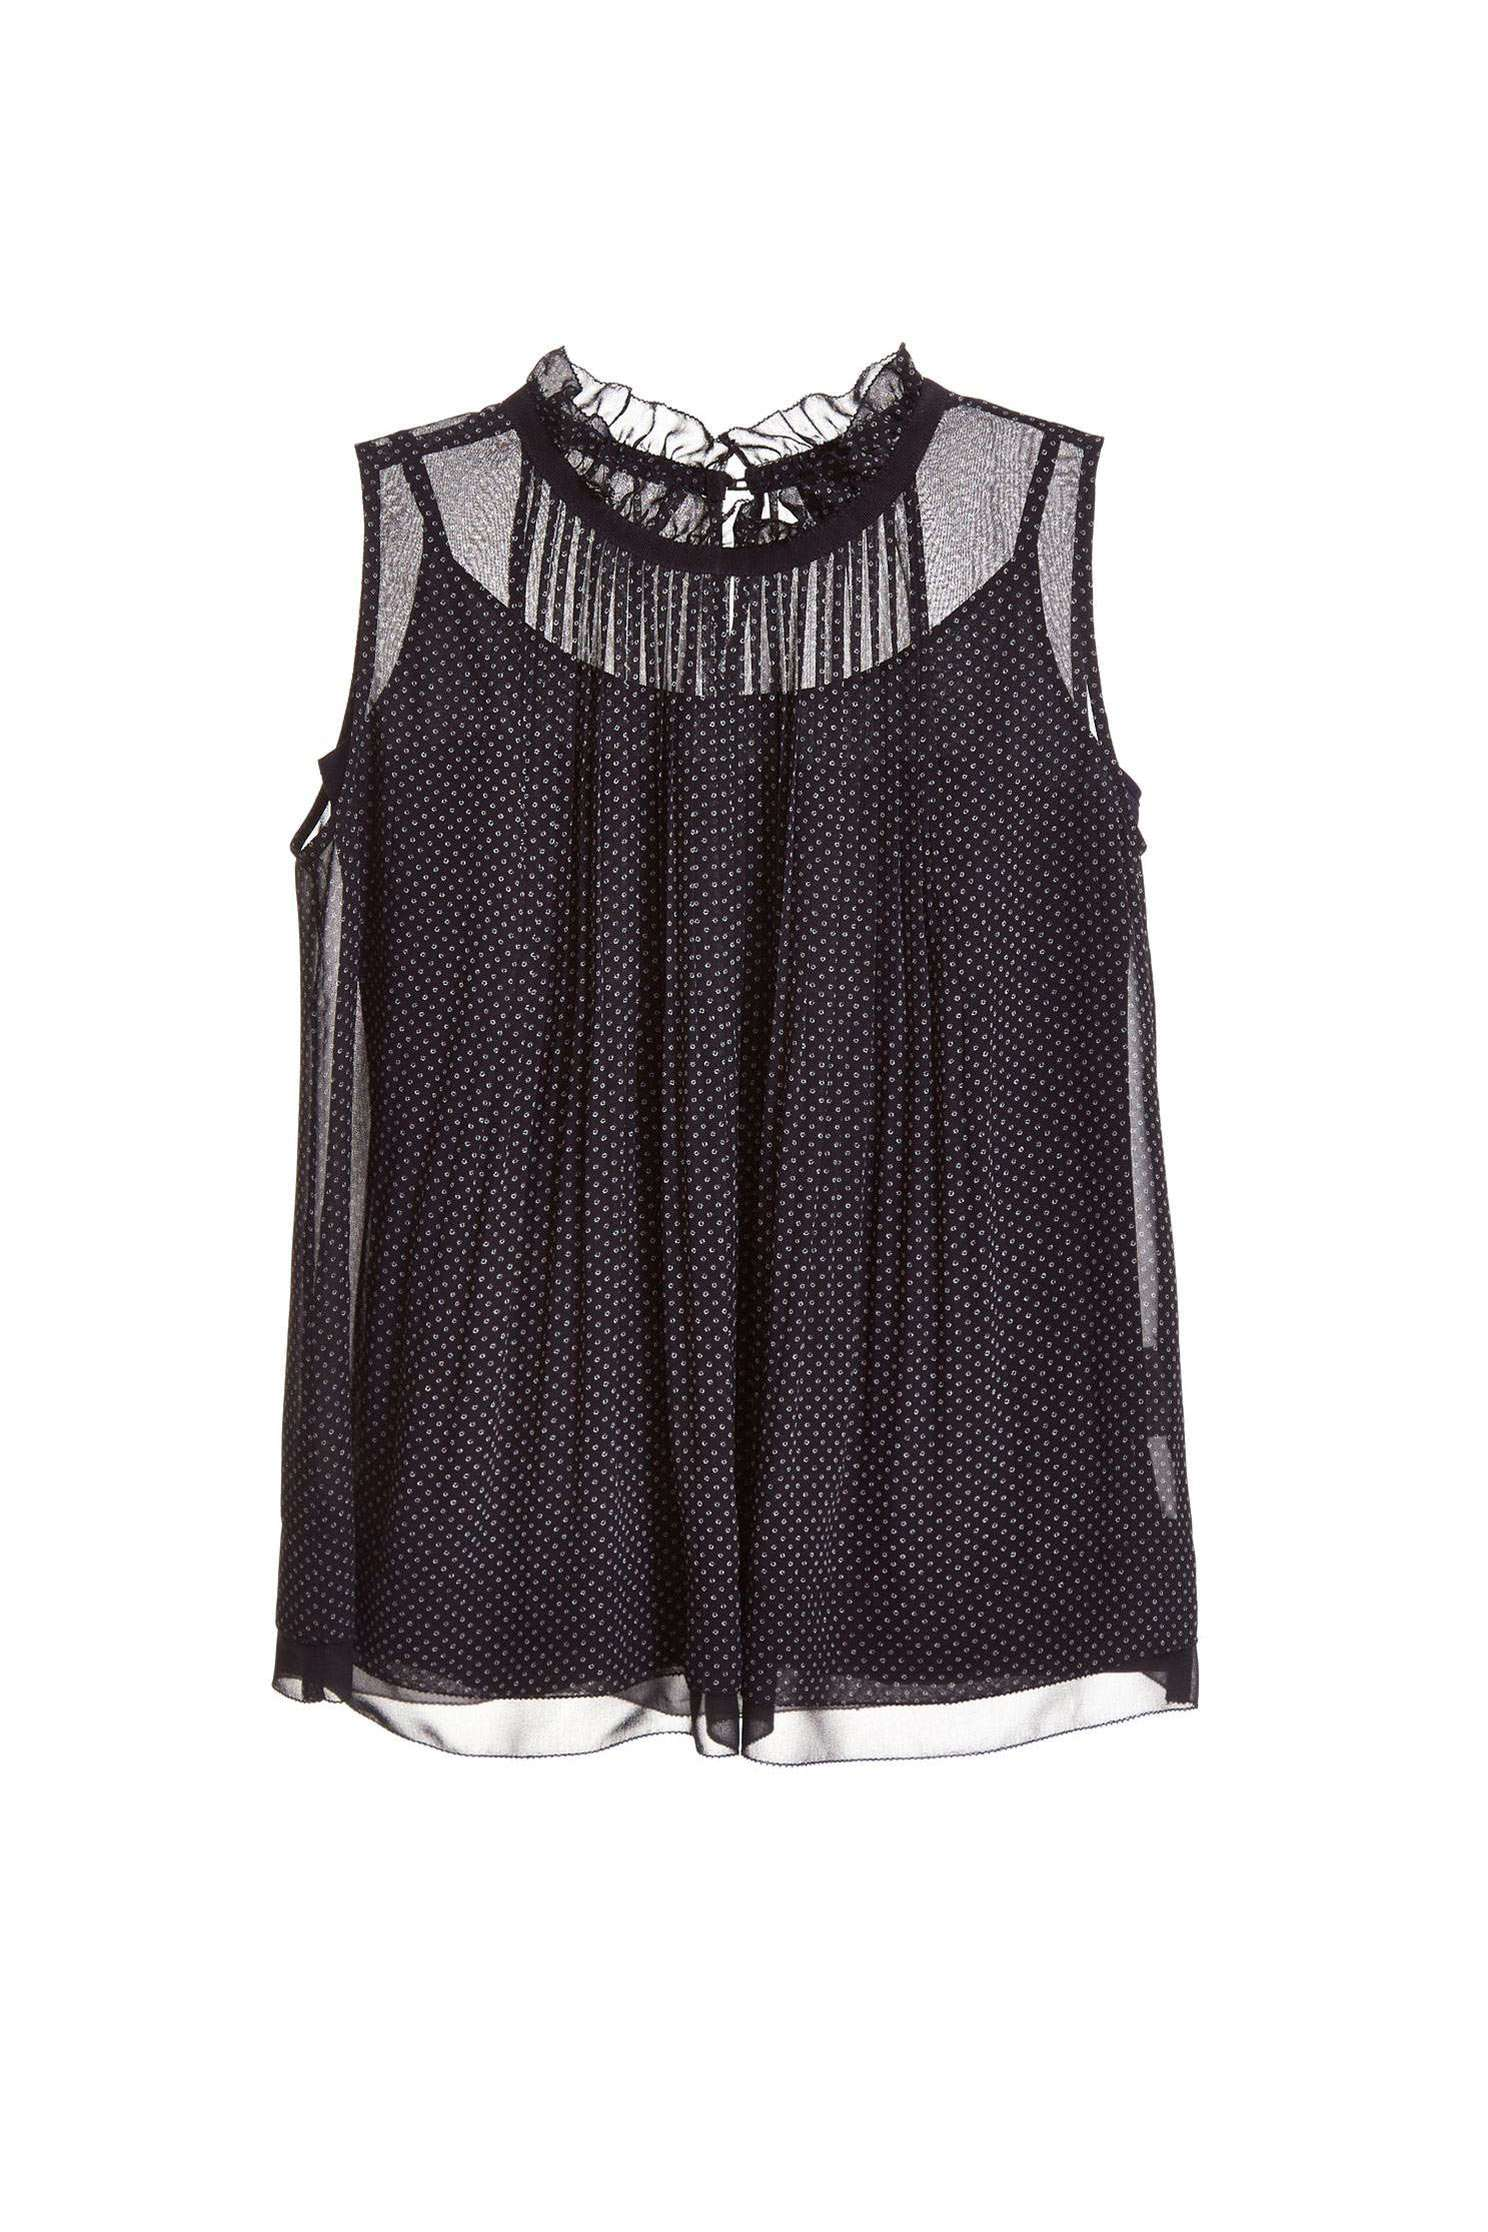 Elegant and slightly transparent chiffon vest,singlet,vest,girlfriendsspringtour,chiffon,blackvest